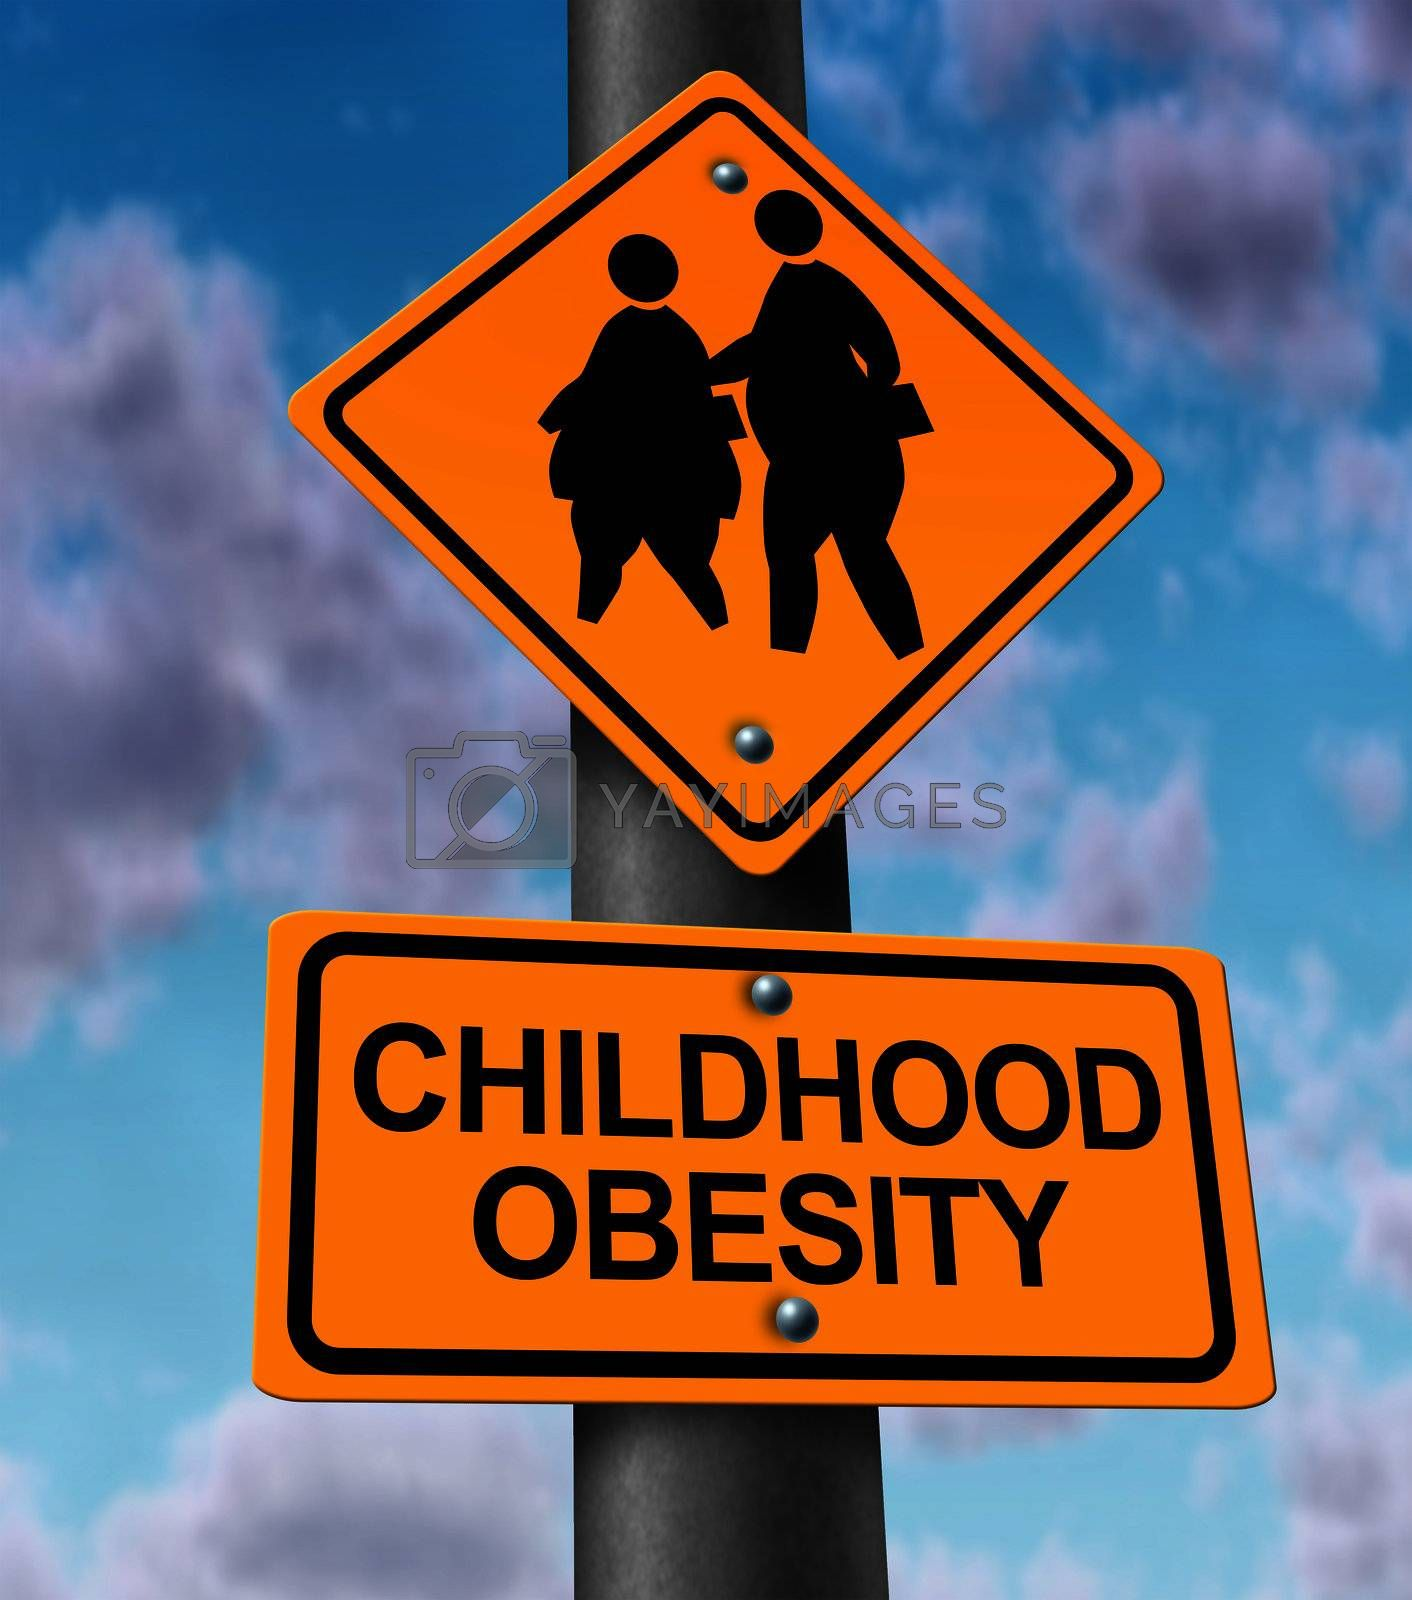 Childhood obesity concept with a traffic road sign showing an icon of overweight kids and young students as a warning to the hazards of eating junk food and fatty fast food.